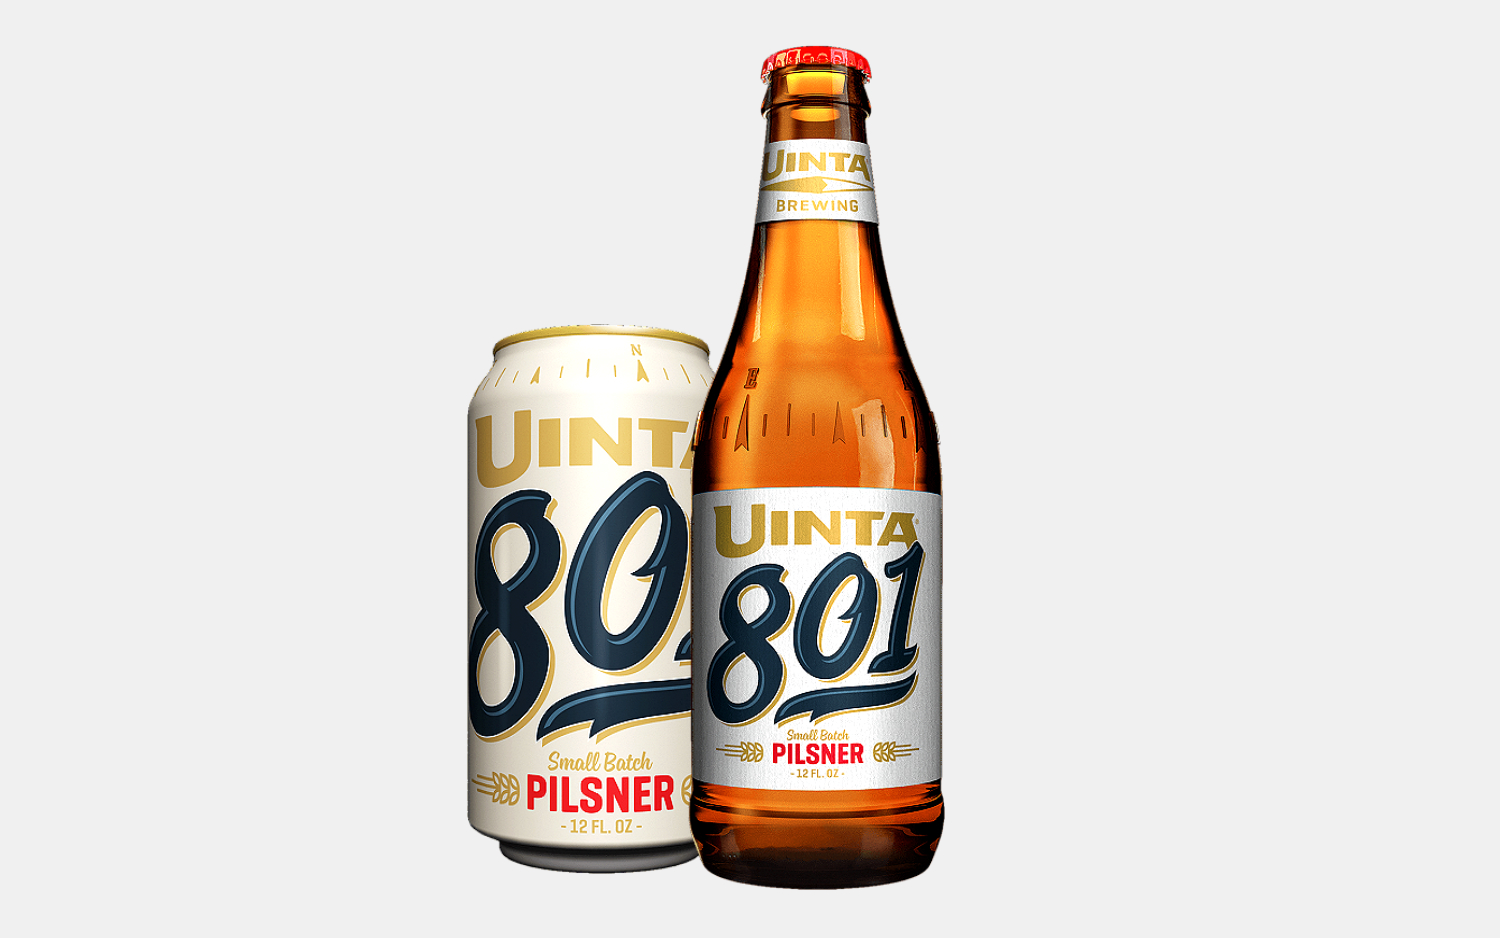 Uinta 801 Small Batch Pilsner